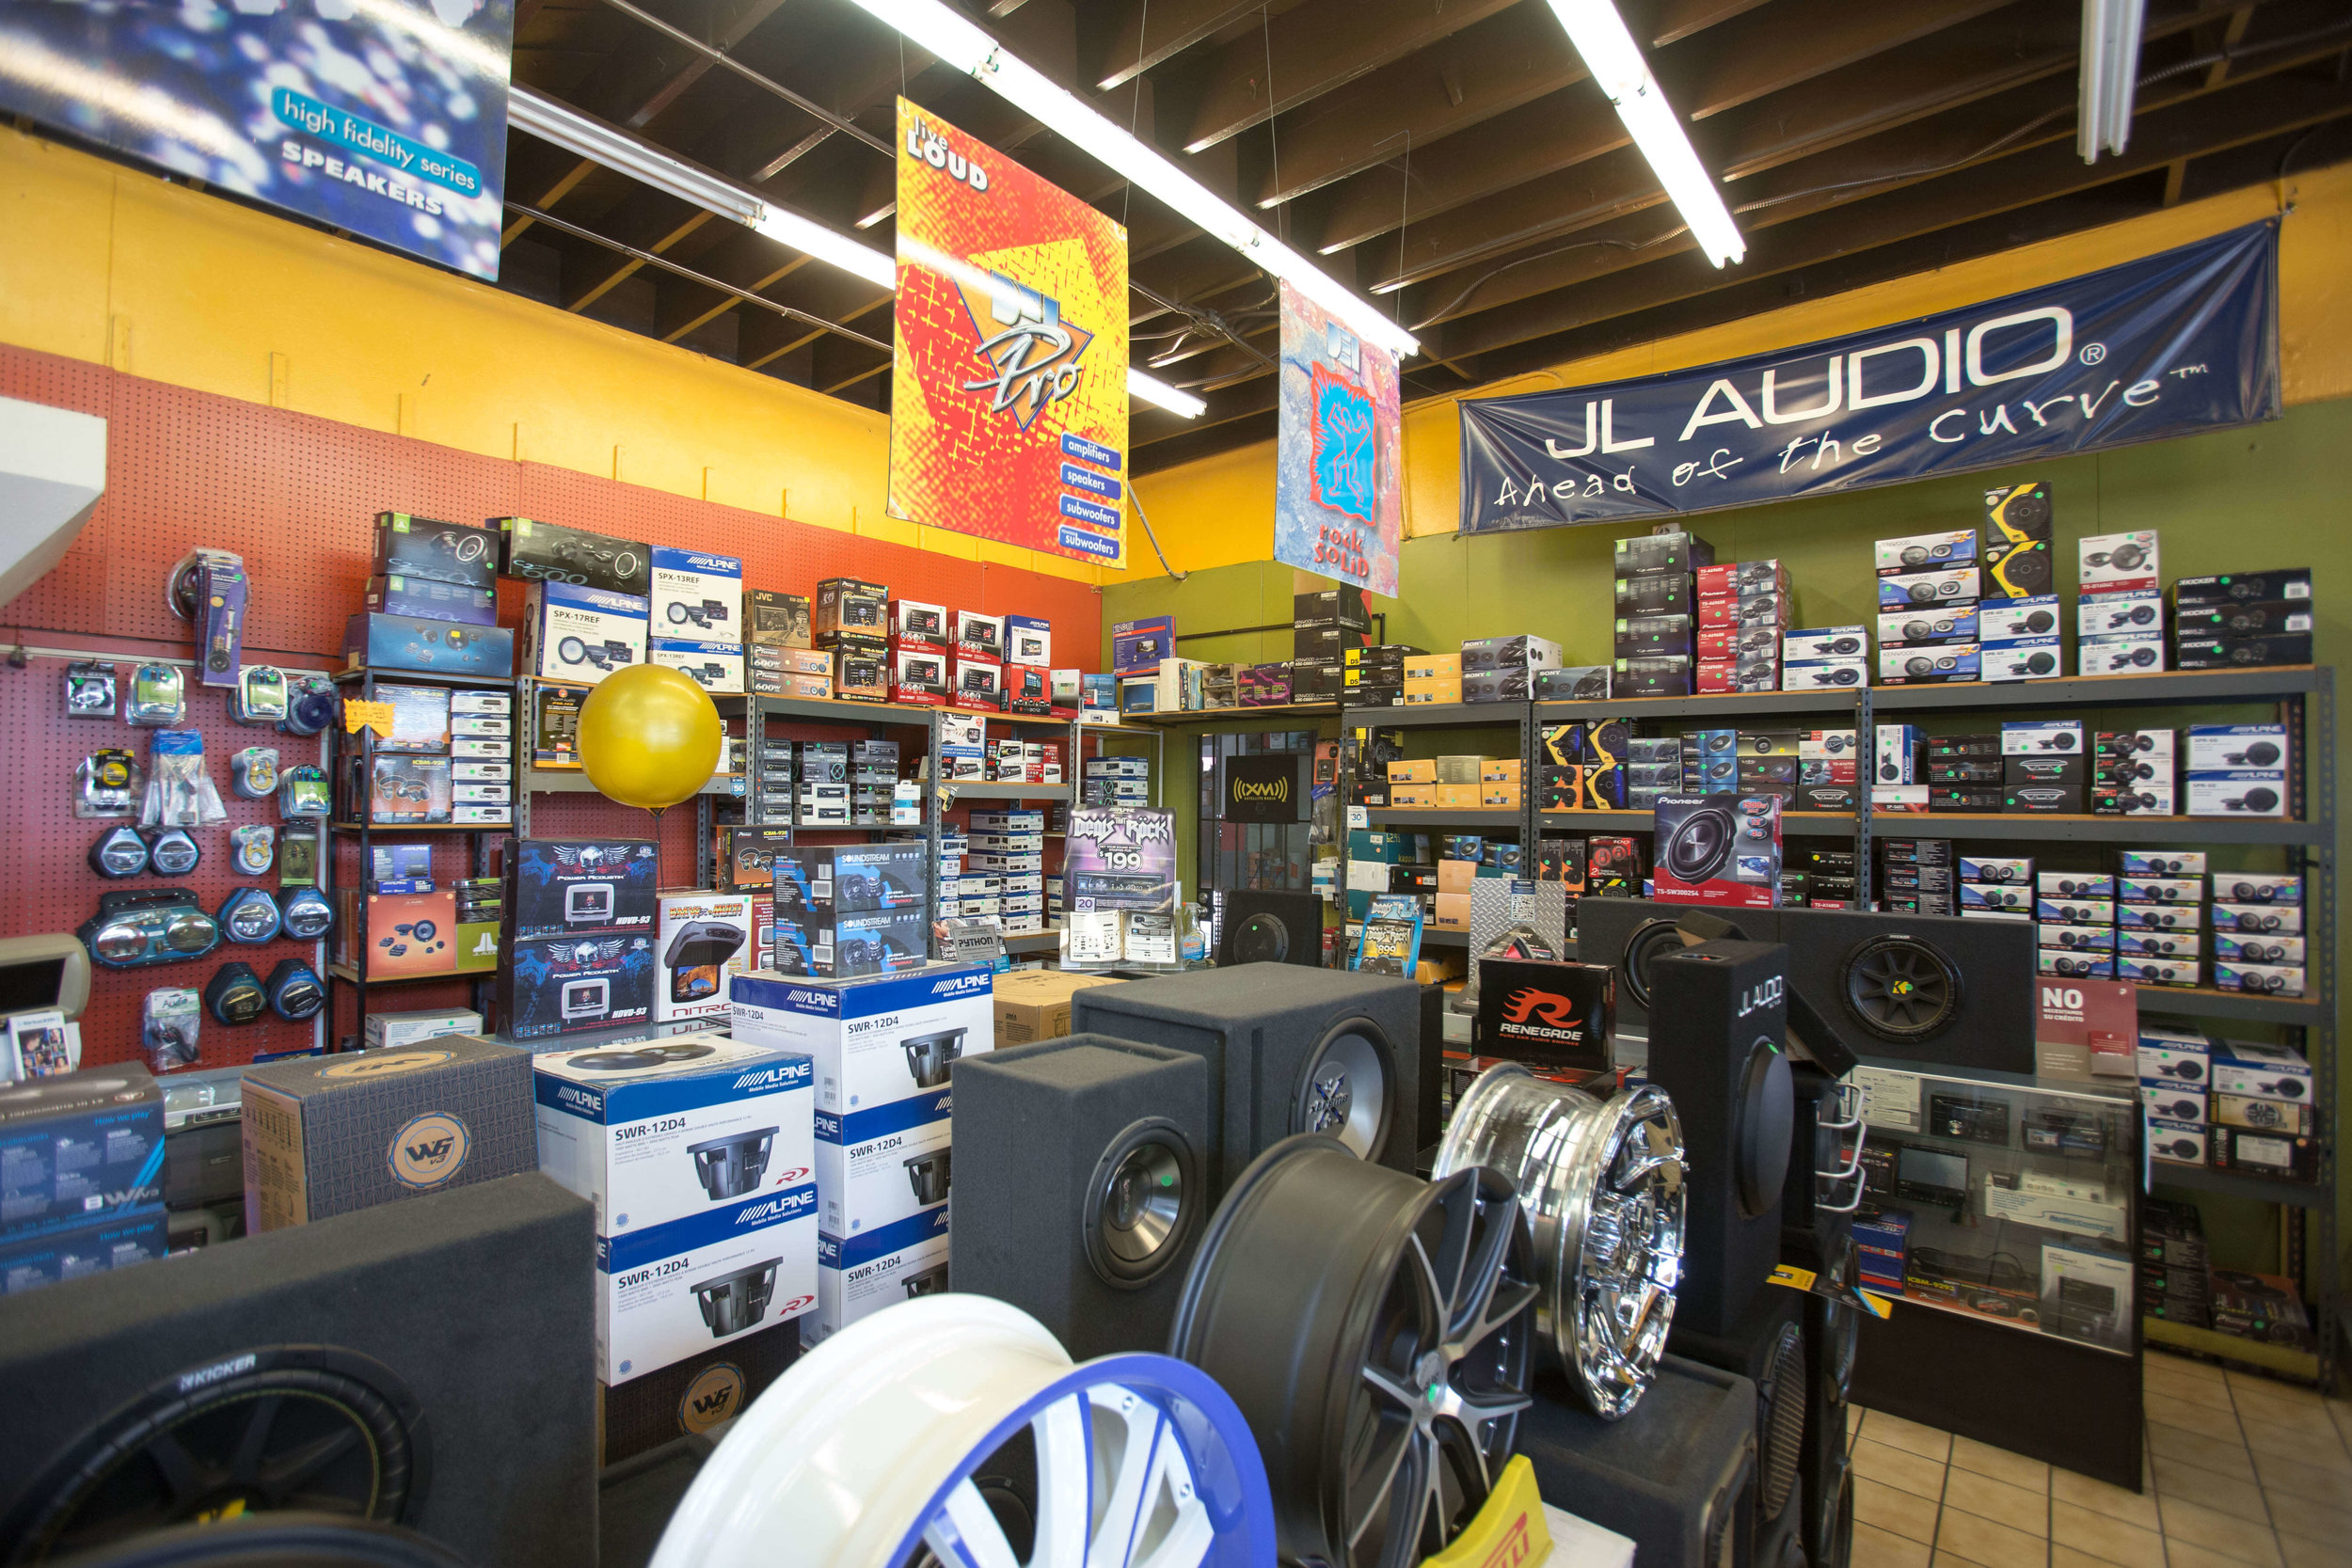 Audiosport can get your car great new wheels and rims